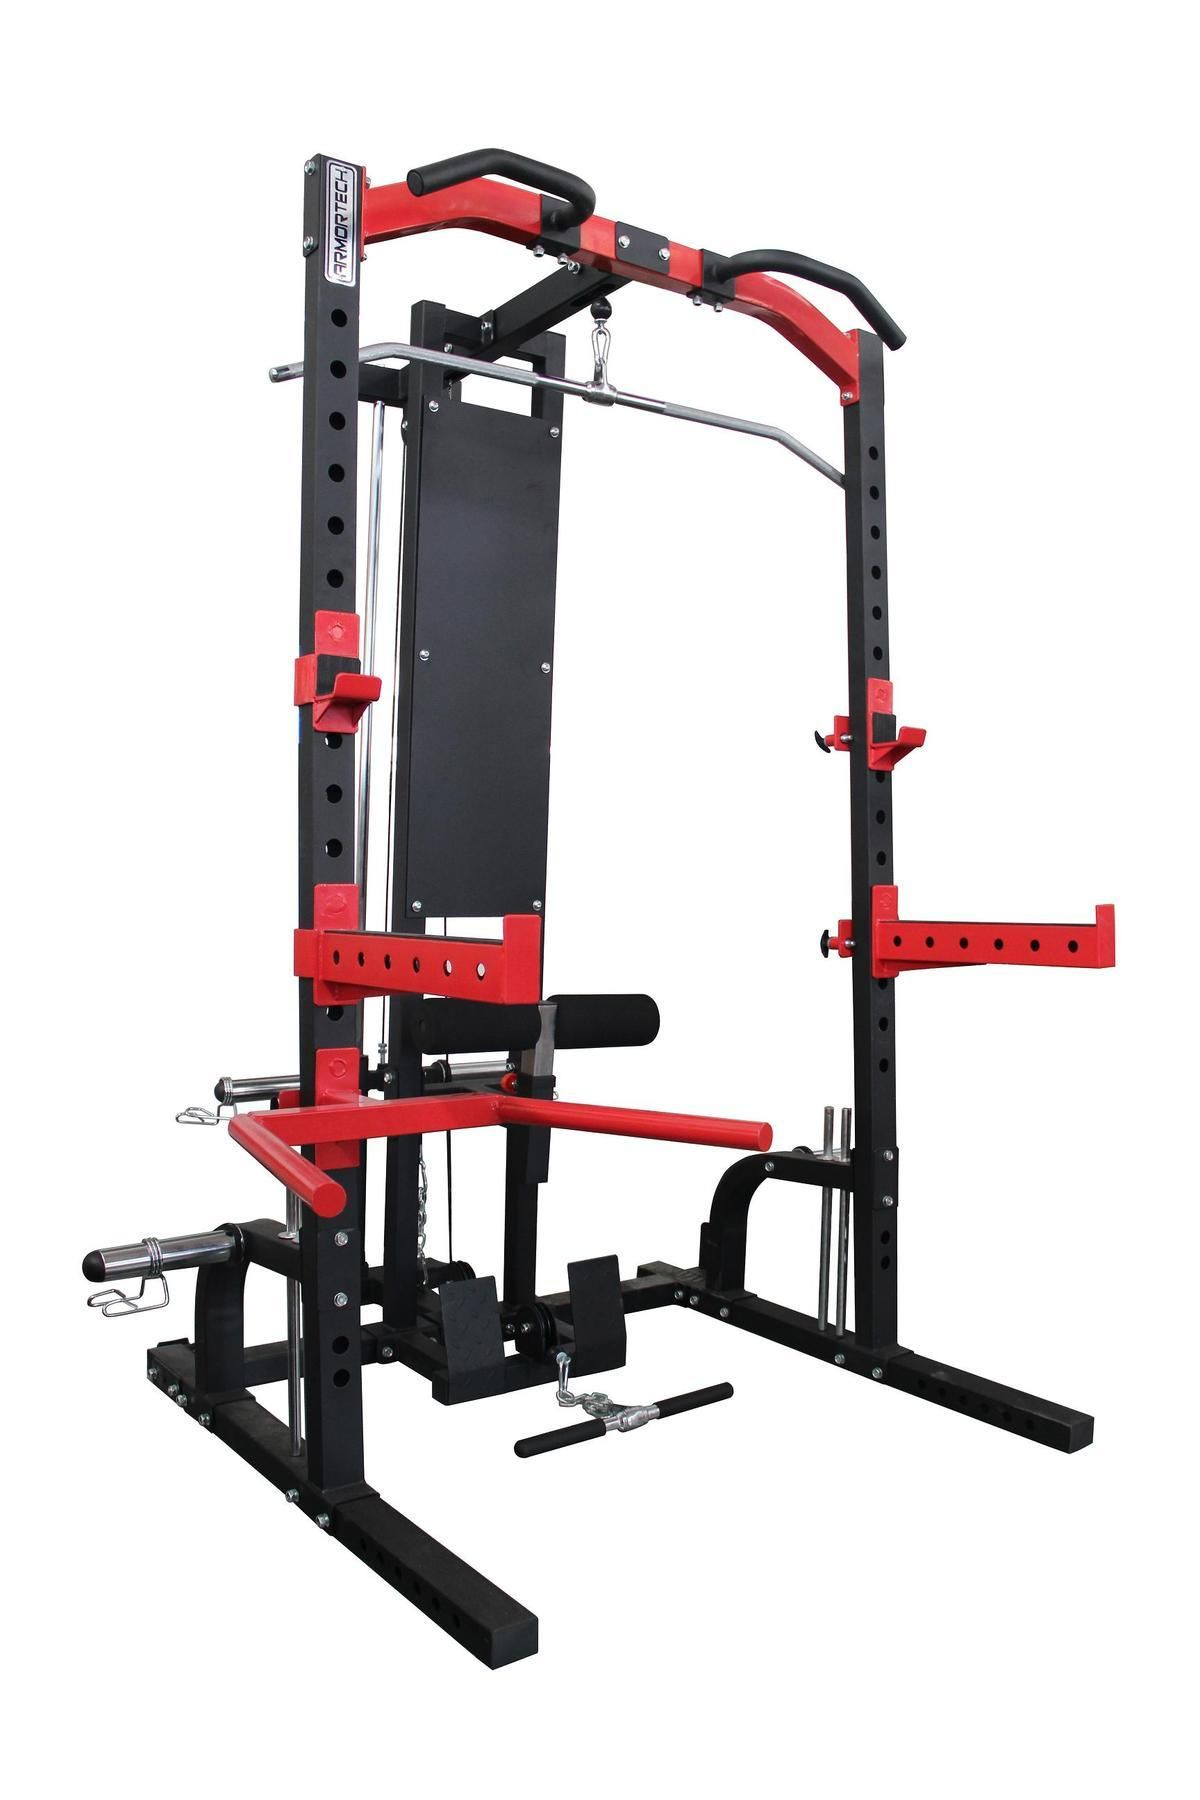 Garage Gym Half Rack Armortech Half Rack Squat Rack Hr33 Options Crypted Molesting